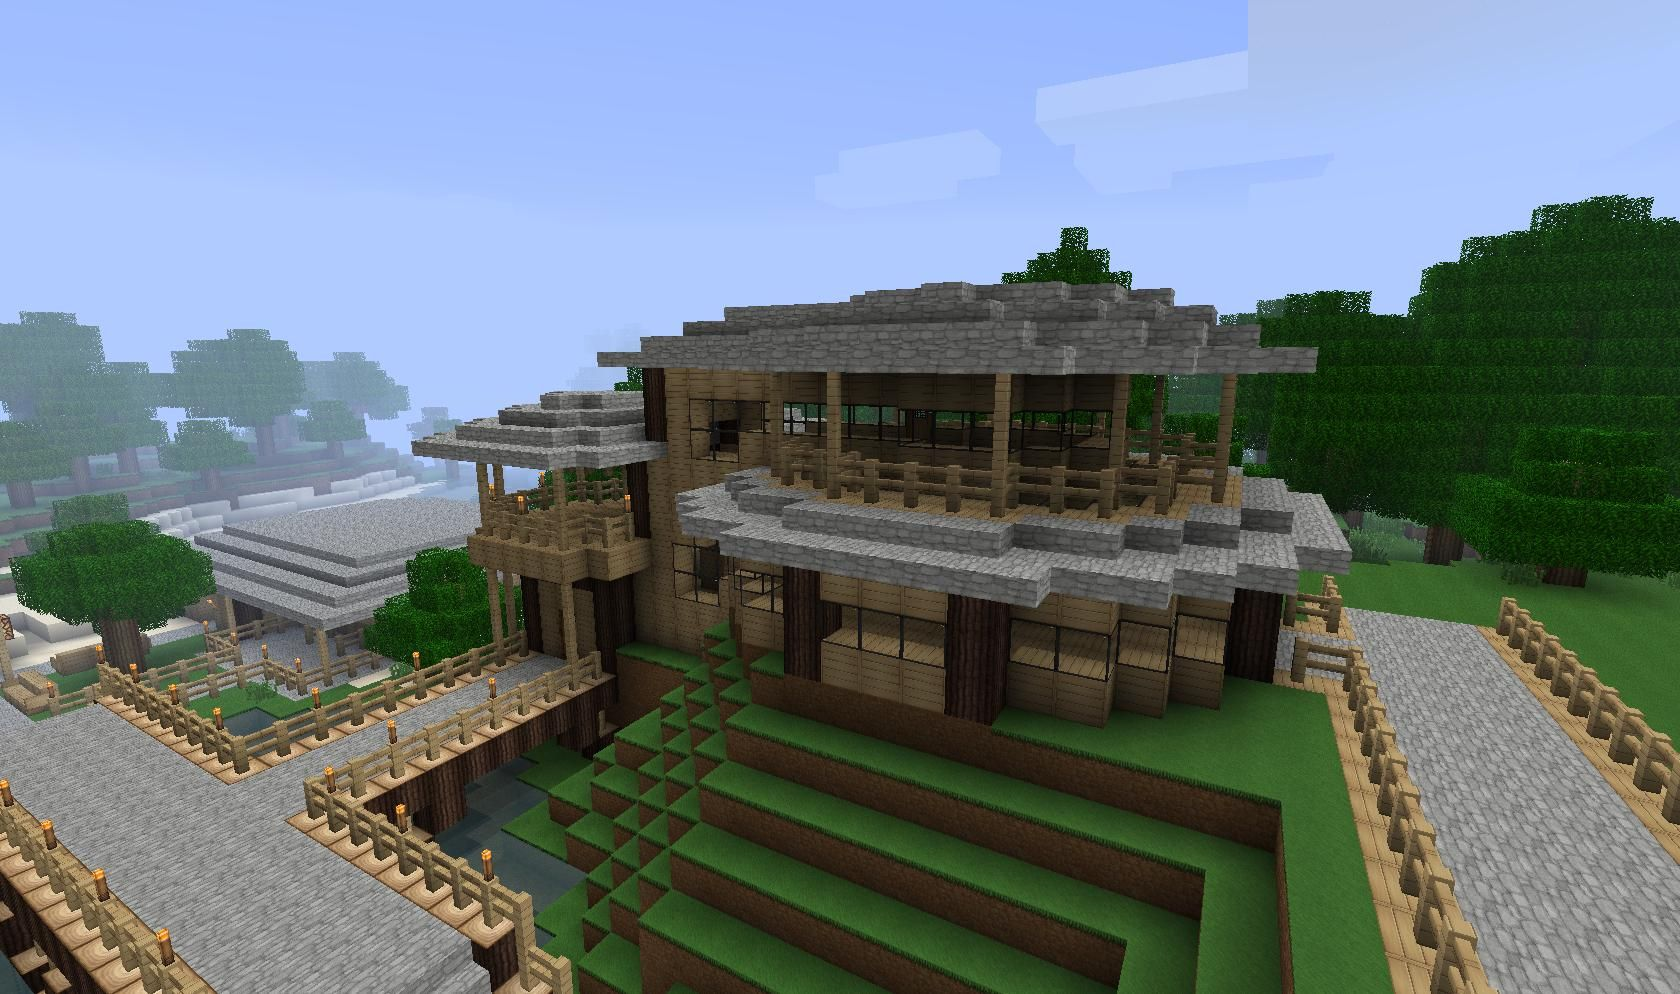 house designs update screenshots show your creation minecraft forum minecraft - Minecraft Home Designs